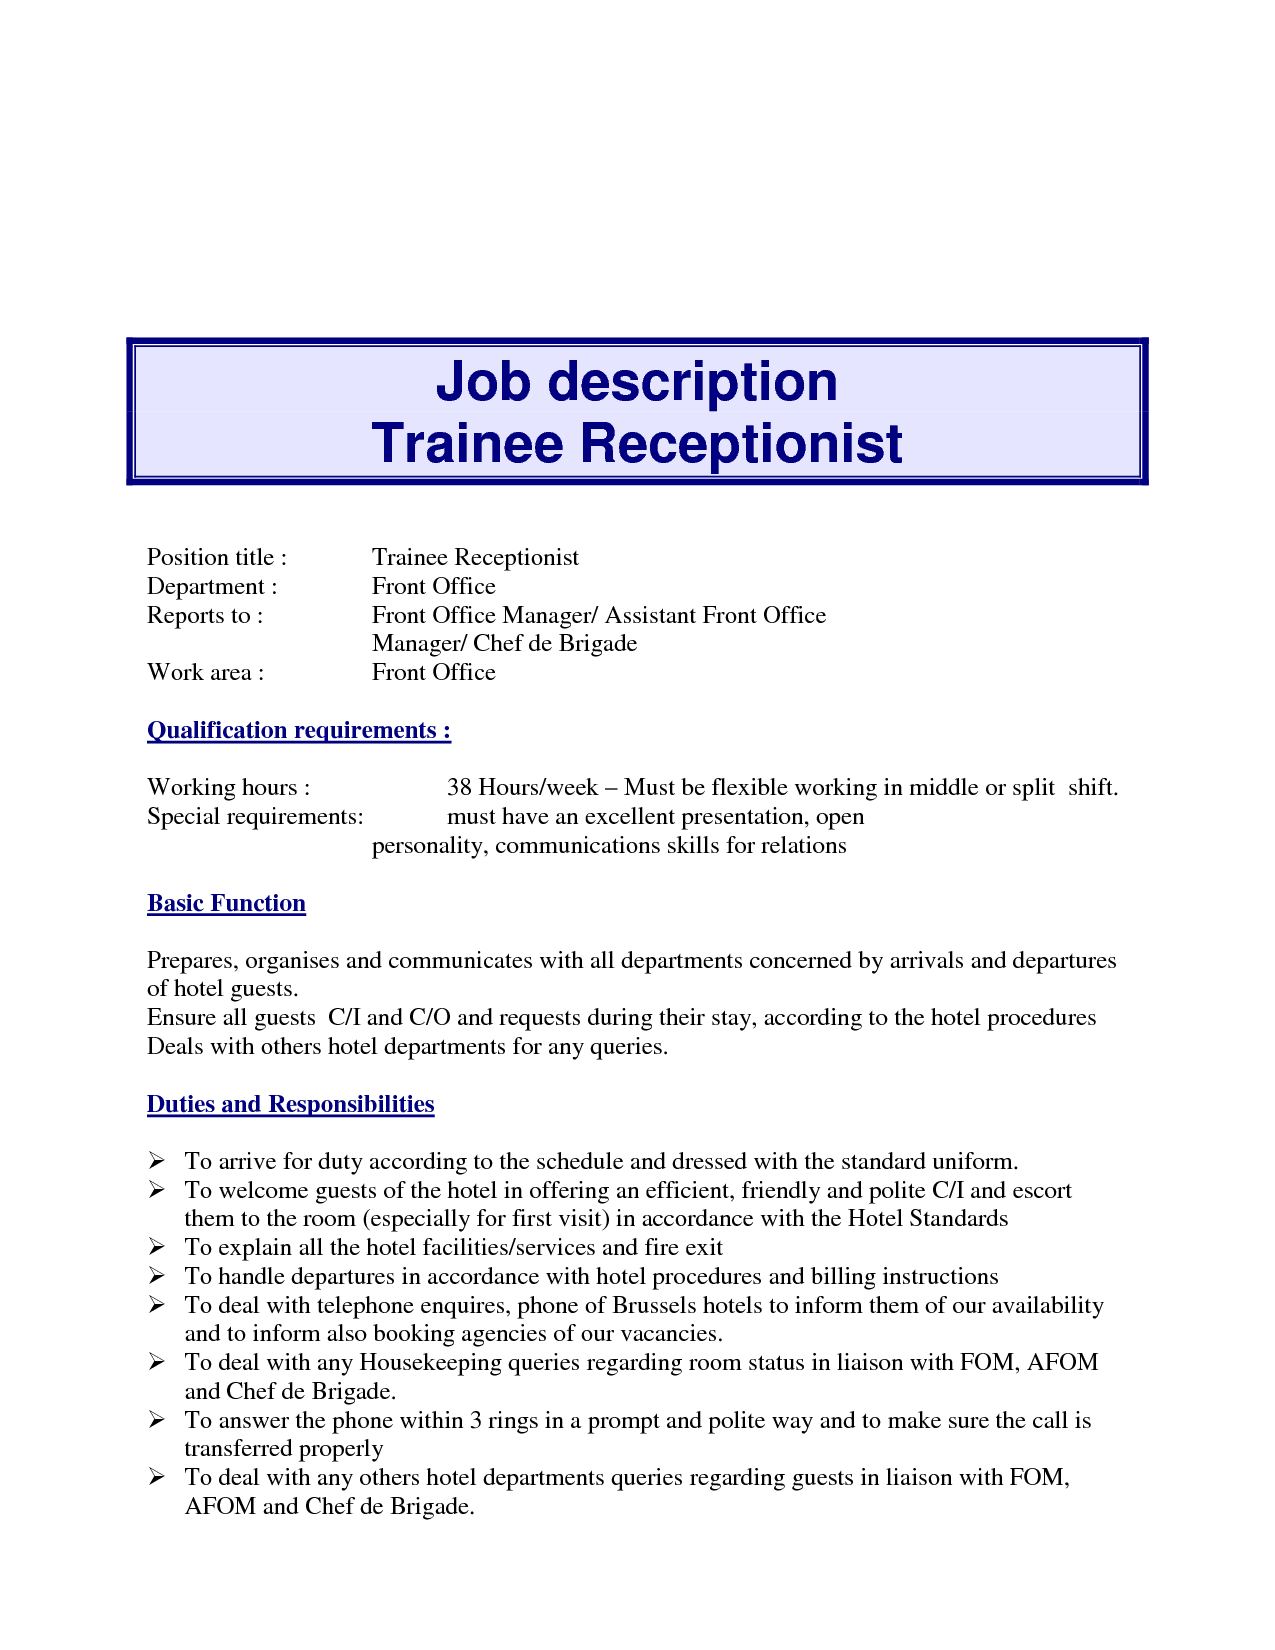 prepress job description resume